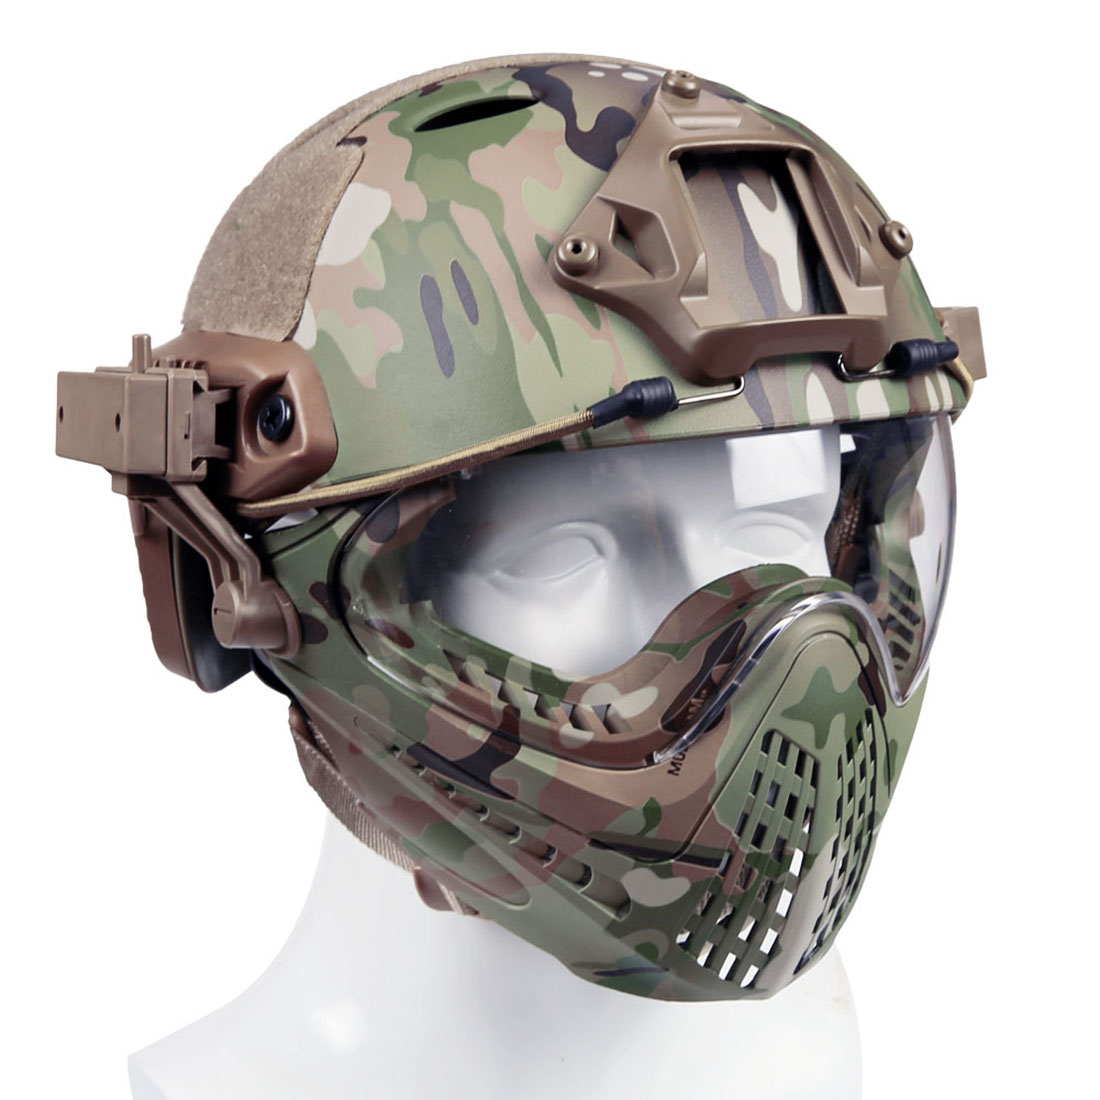 Durable Hunting Tactical Head Protector WST Navigator Tactical Camouflage Protective Helmet  For Airsoft Wargame Equipment